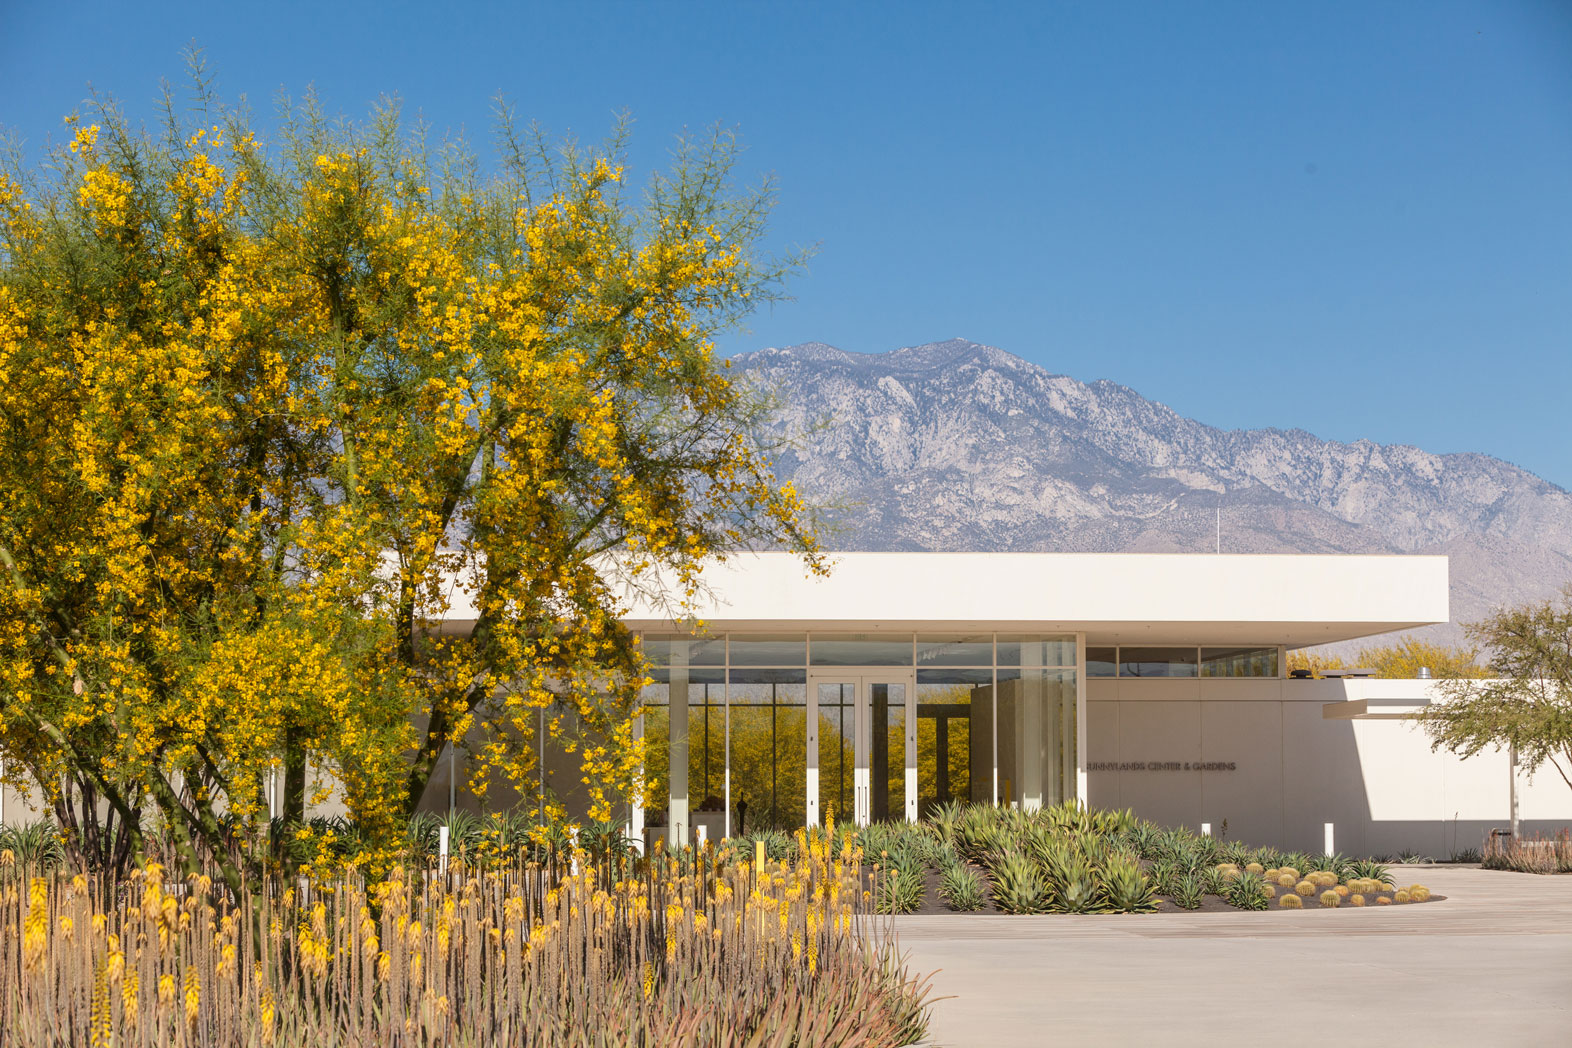 A blooming Sweet Acacia against a backdrop of the Center and Gardens and Mount San Jacinto. Blooming Blue Elf Aloe are in the foreground.